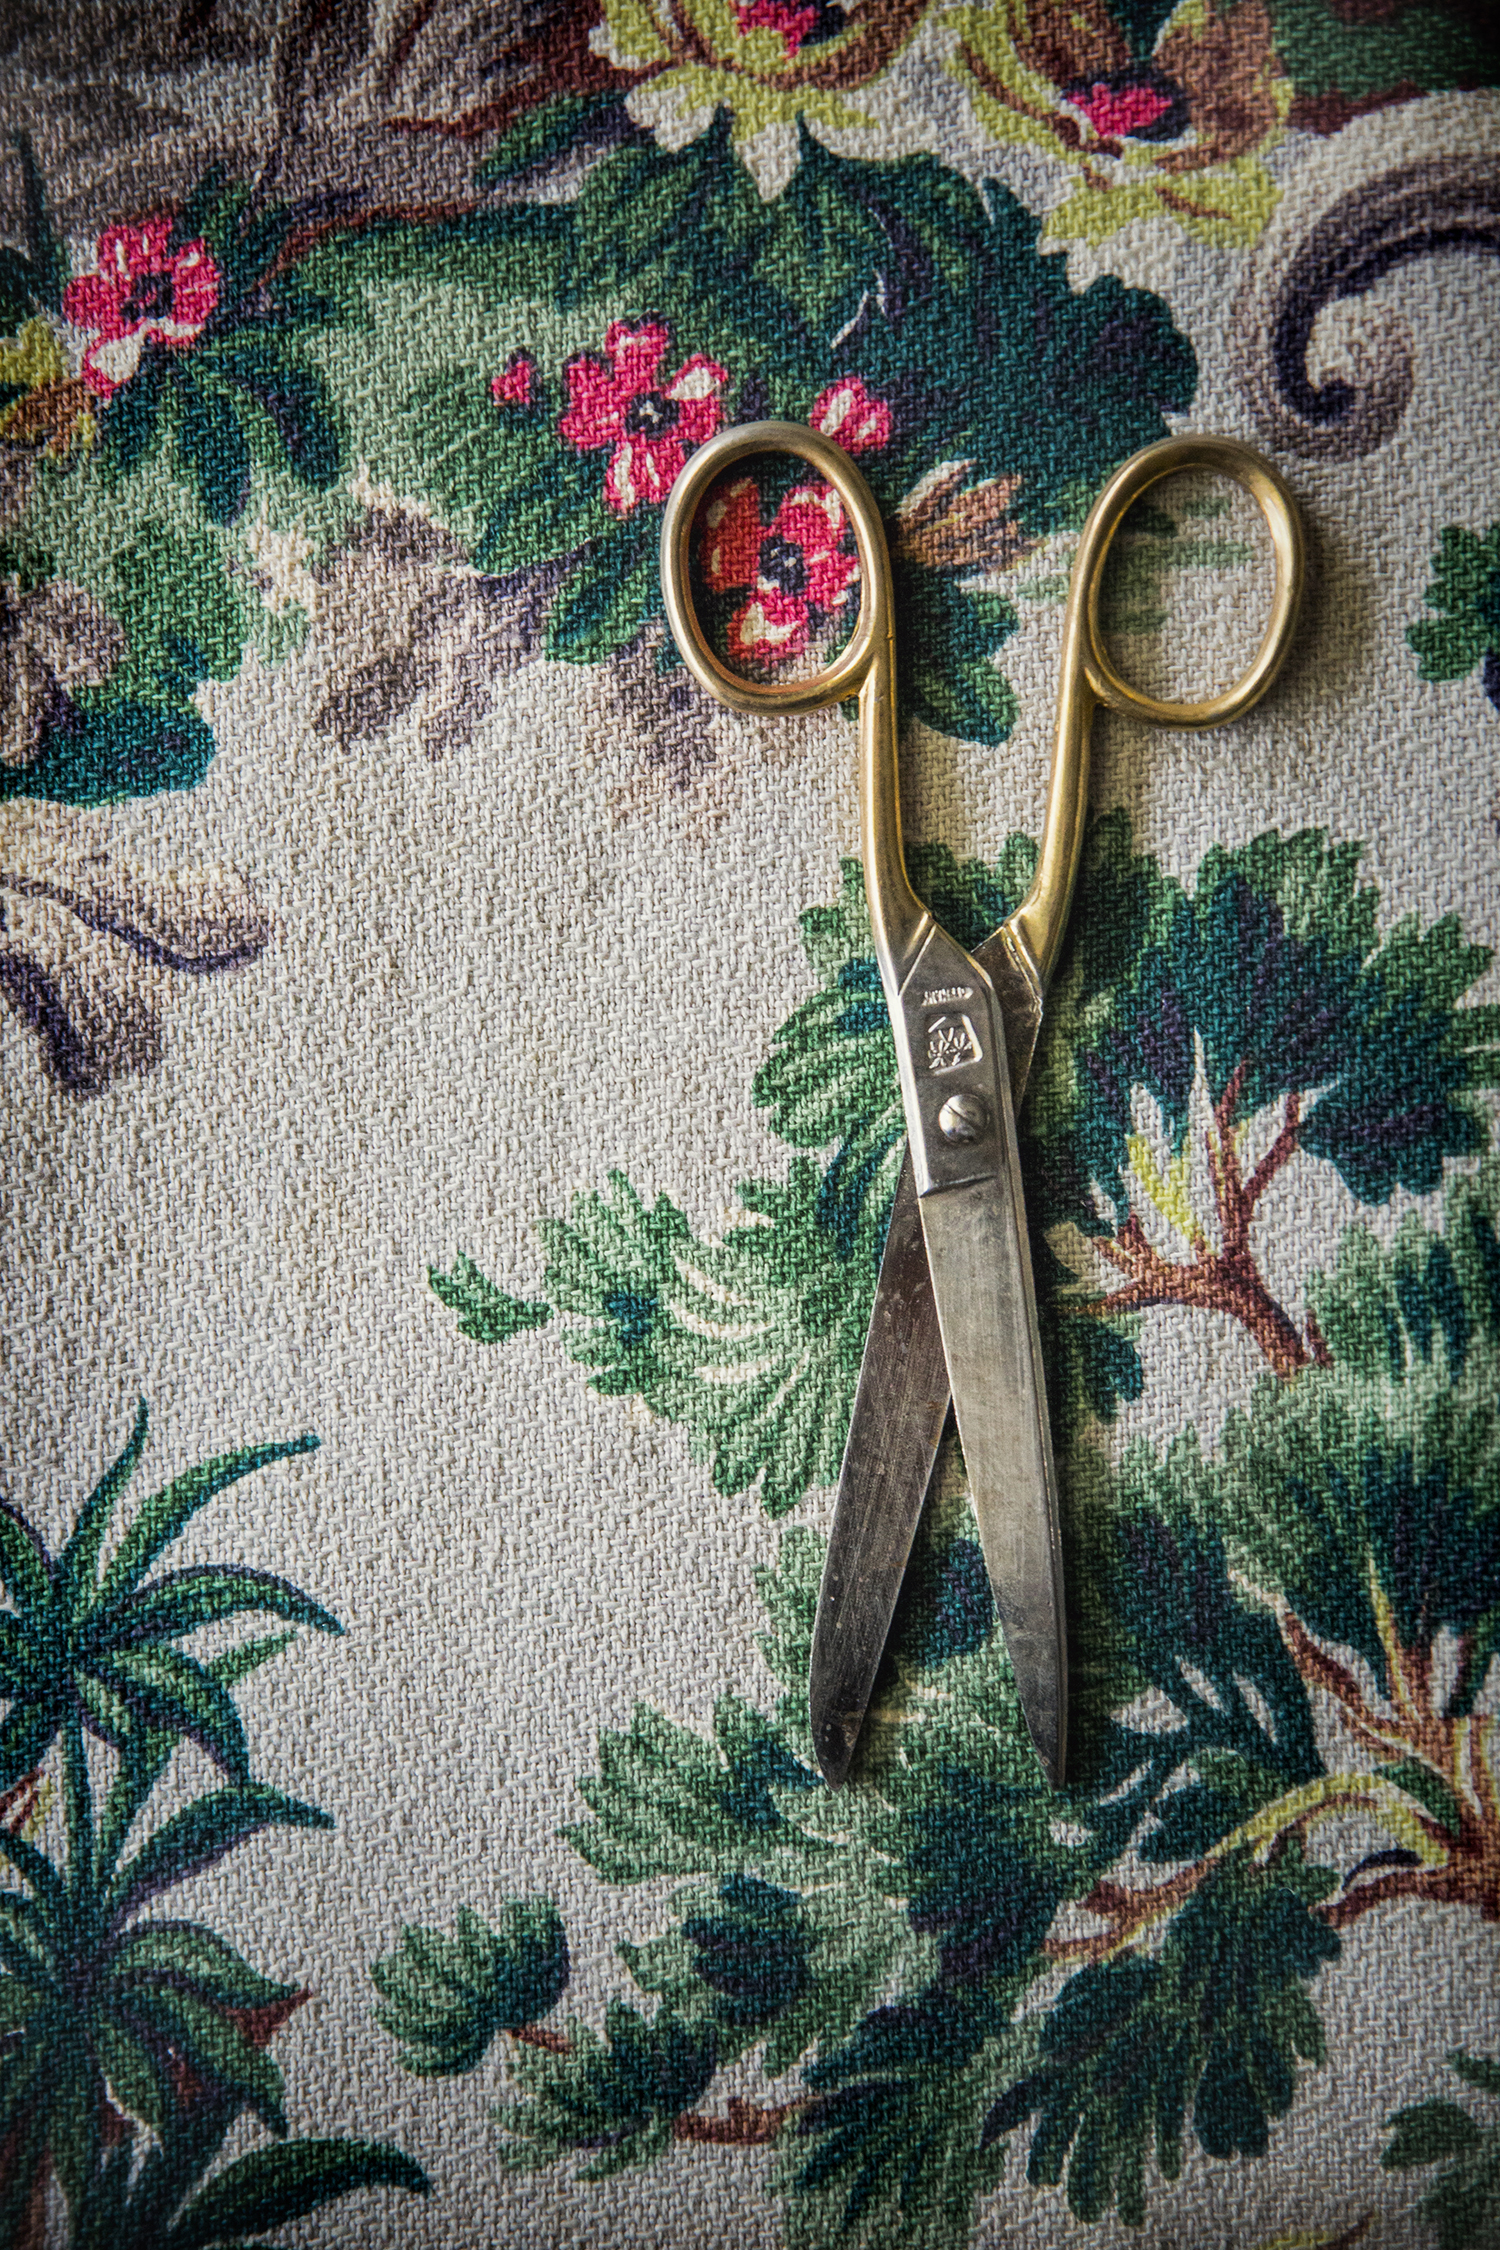 Scissors_on_Fabric_0026.jpg